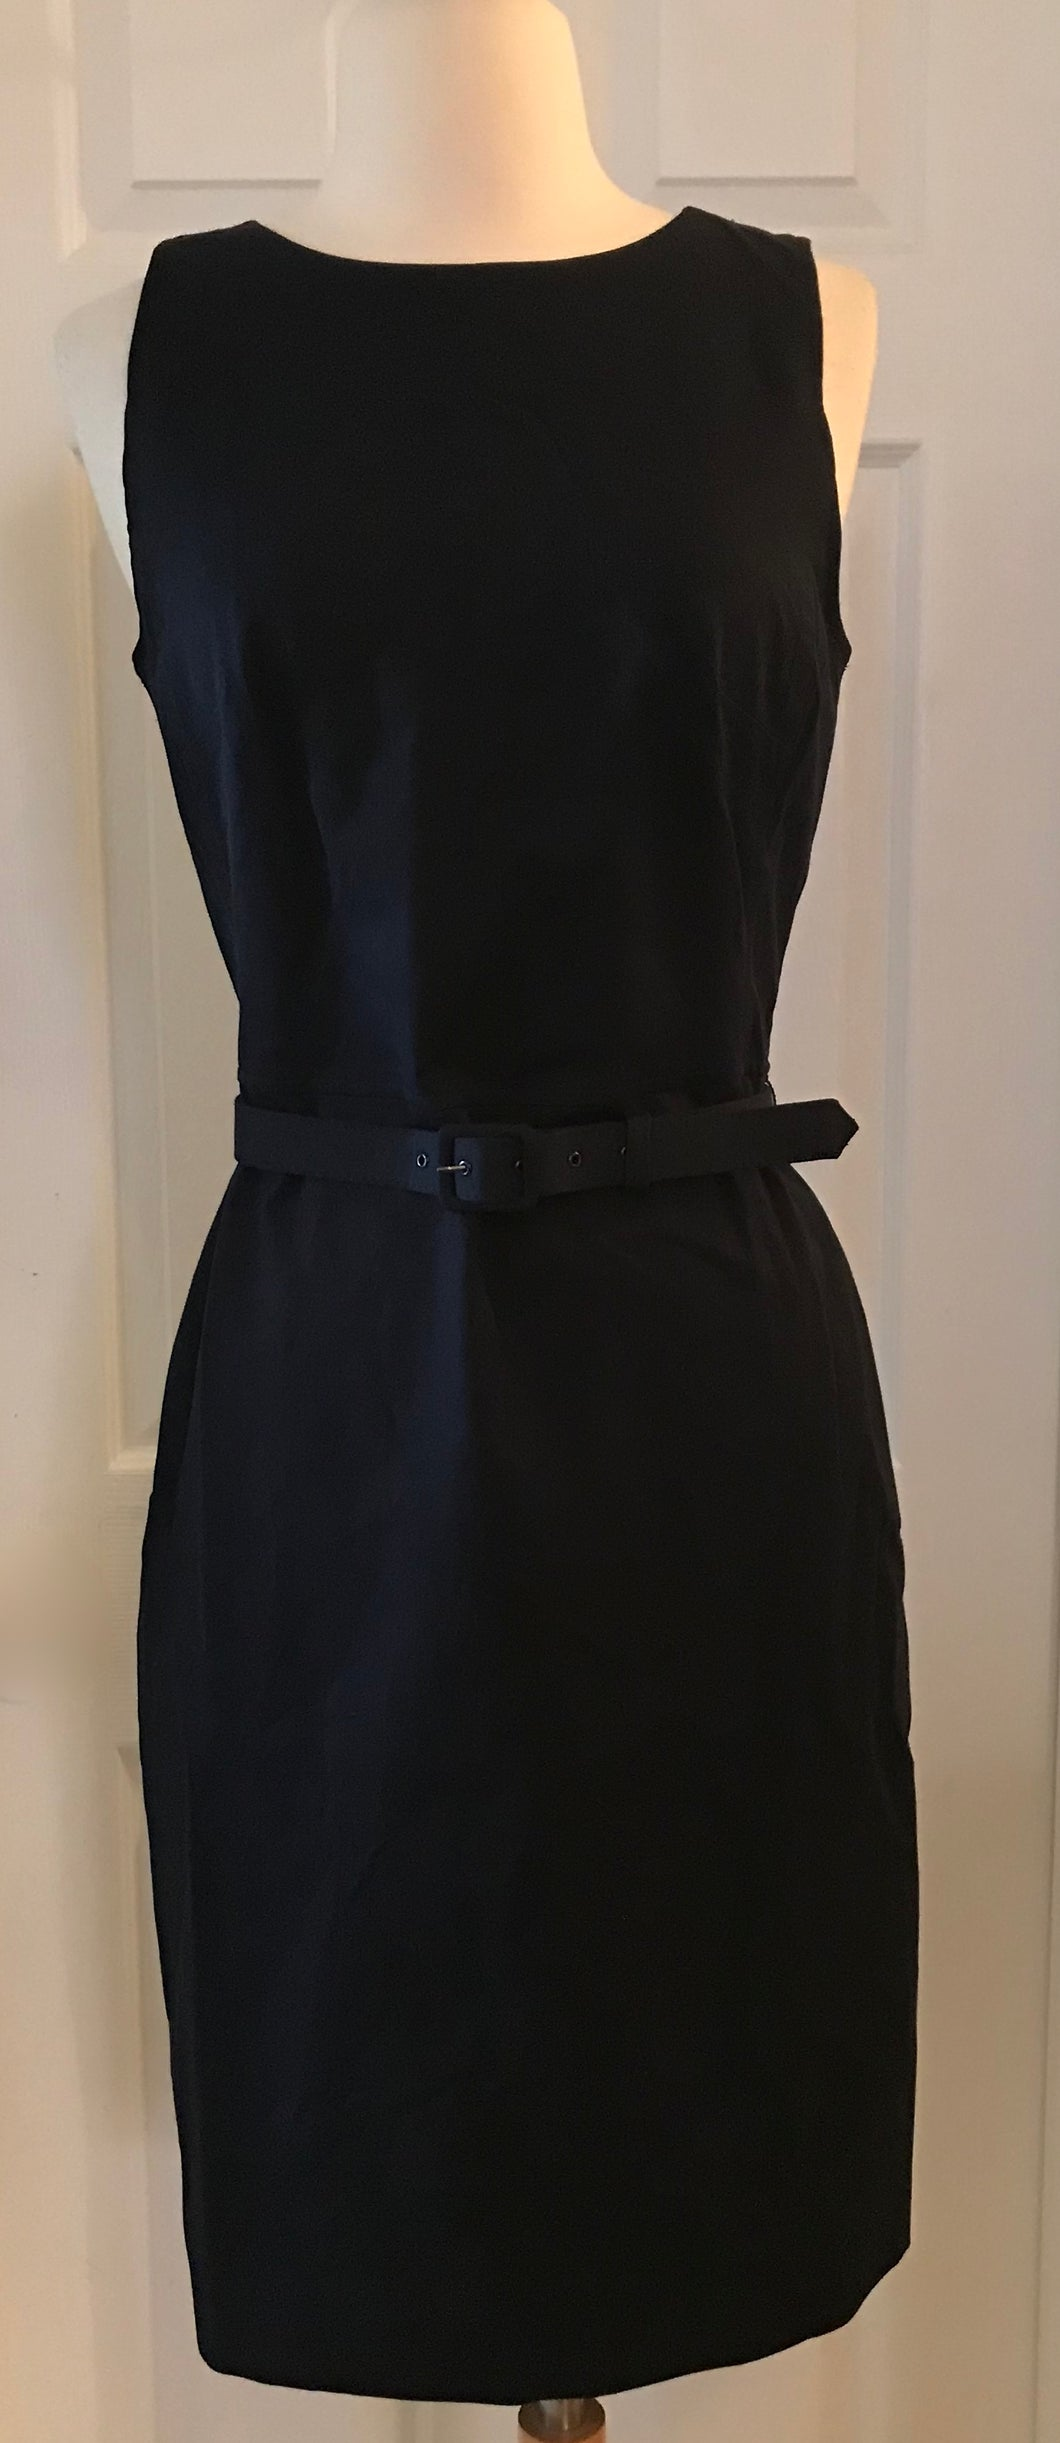 99d73acb J.CREW BELTED SHEATH DRESS IN TWO-WAY STRETCH COTTON SIZE 4 NAVY G7547